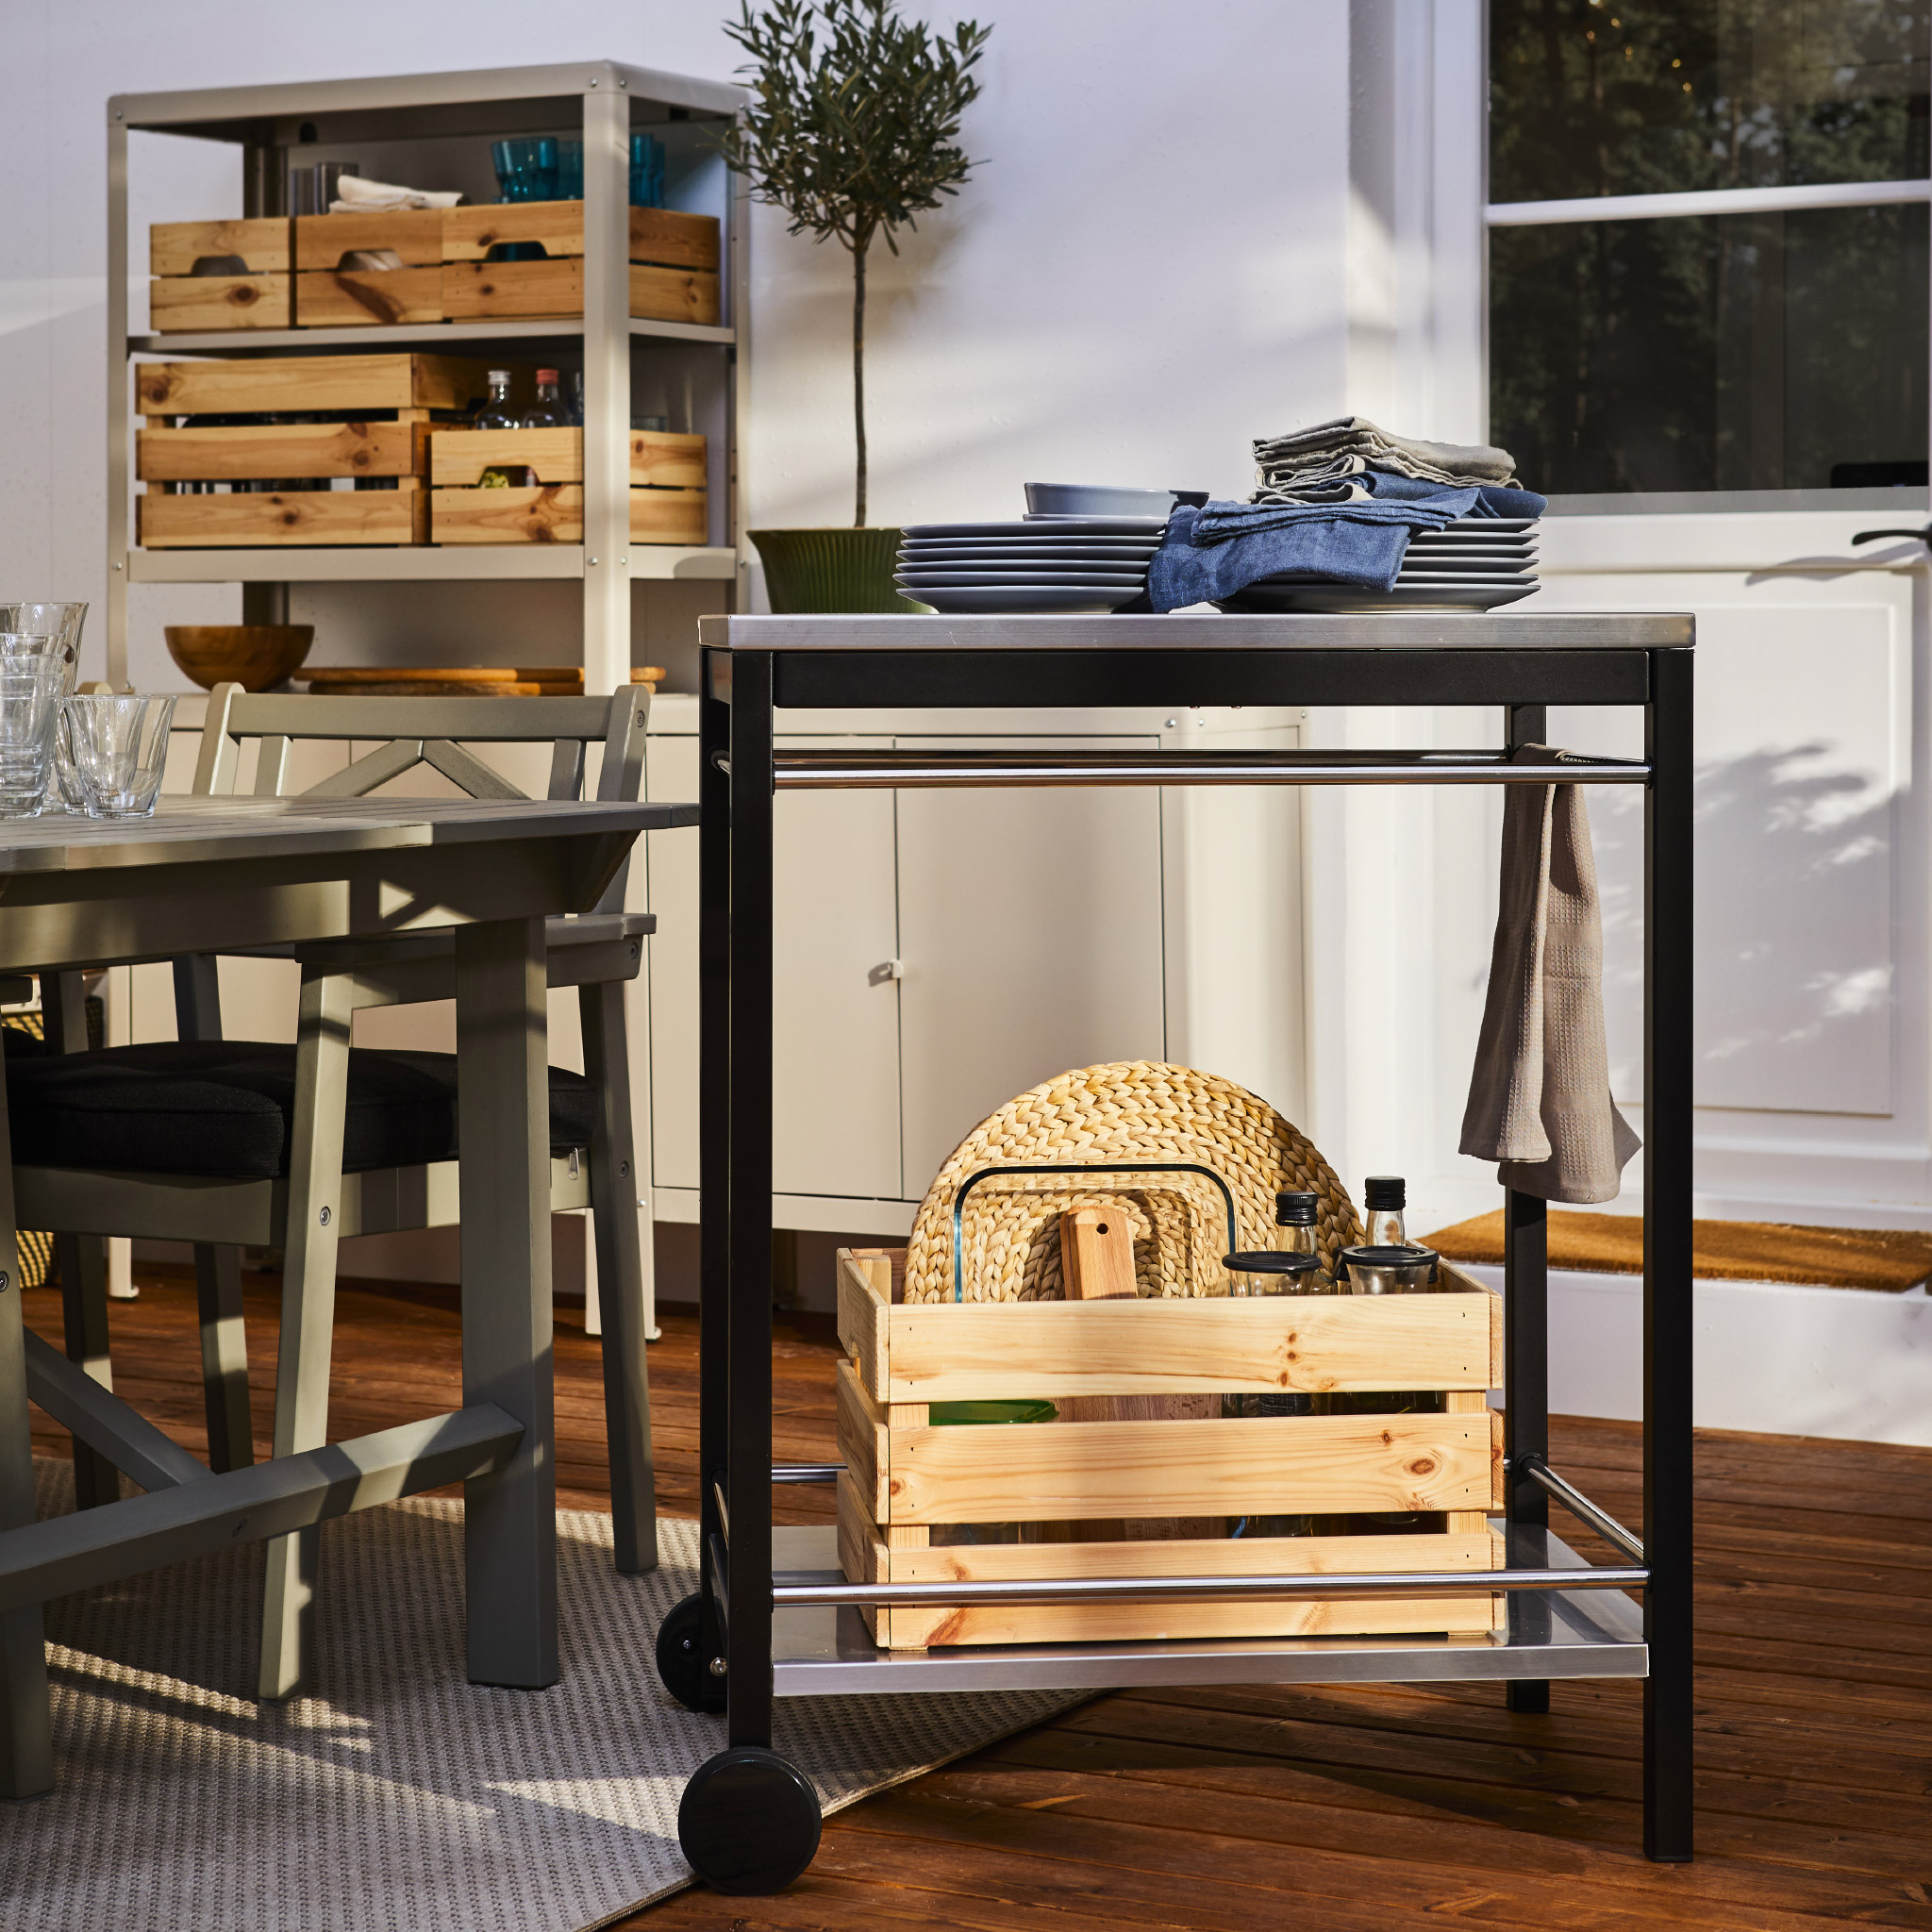 A trolley on castors in black/stainless steel holds dinnerware, towels and more, and it's standing by a dining table.